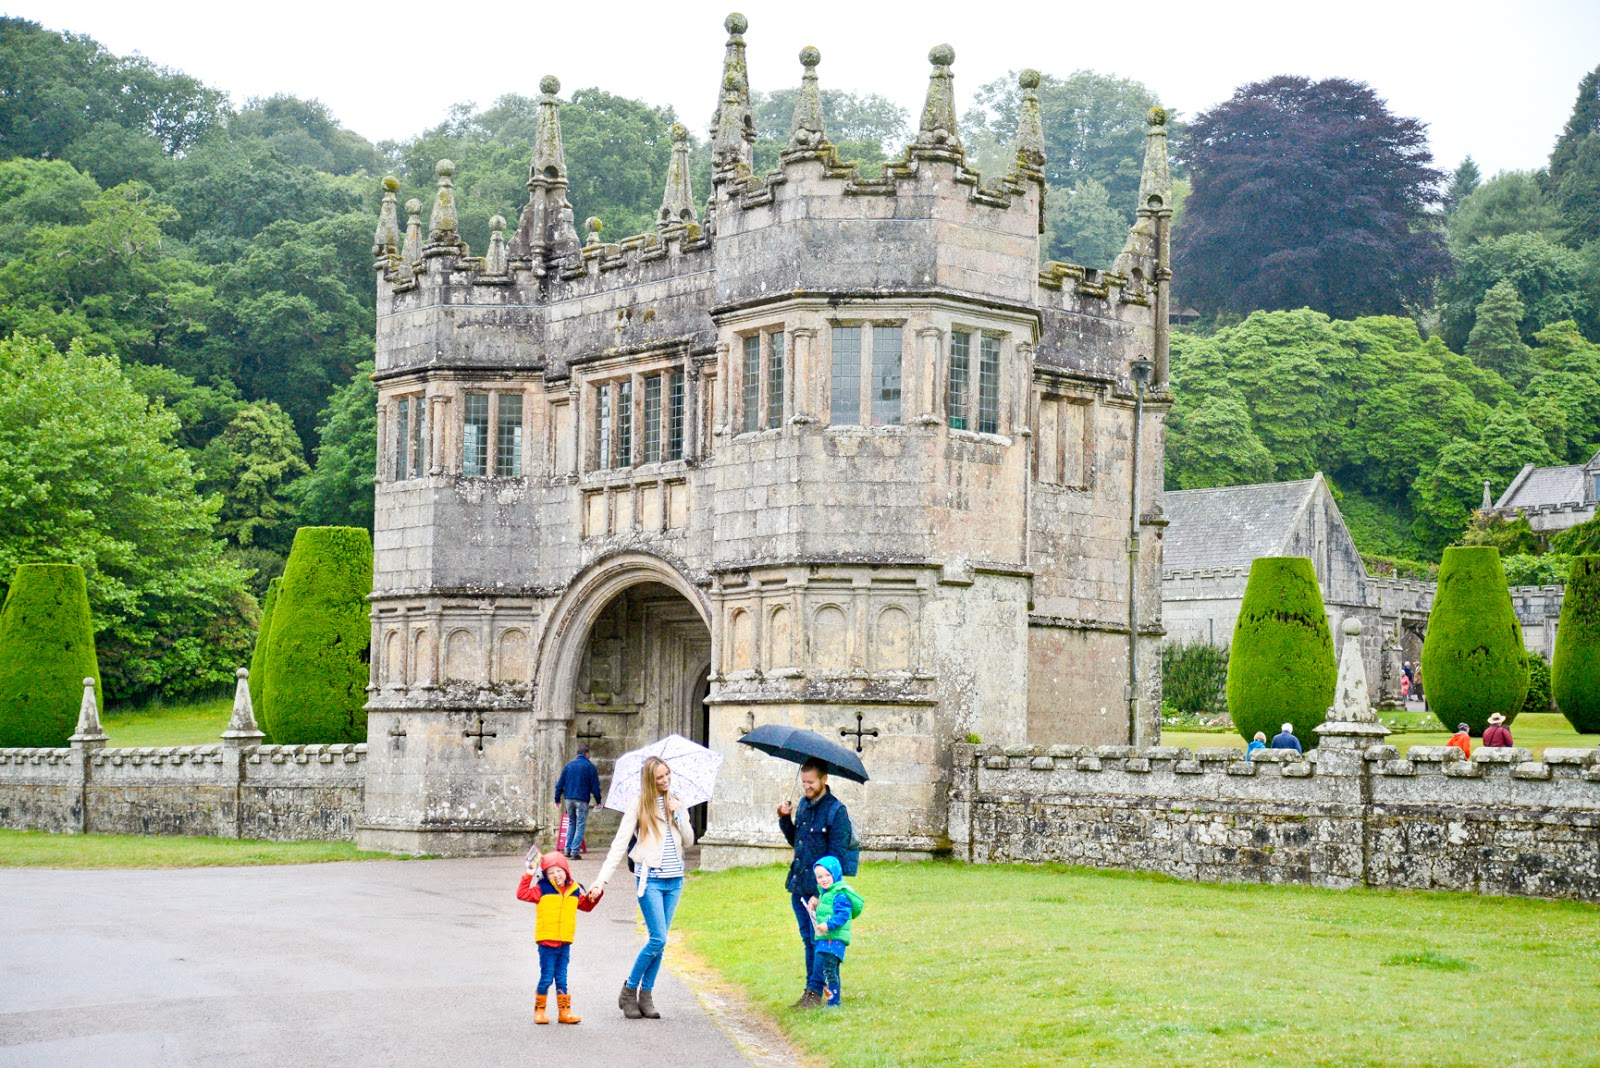 lanhydrock, lanhydrock cornwall, uk family holidays with kids, cornwall days out with the kids, family travel uk,